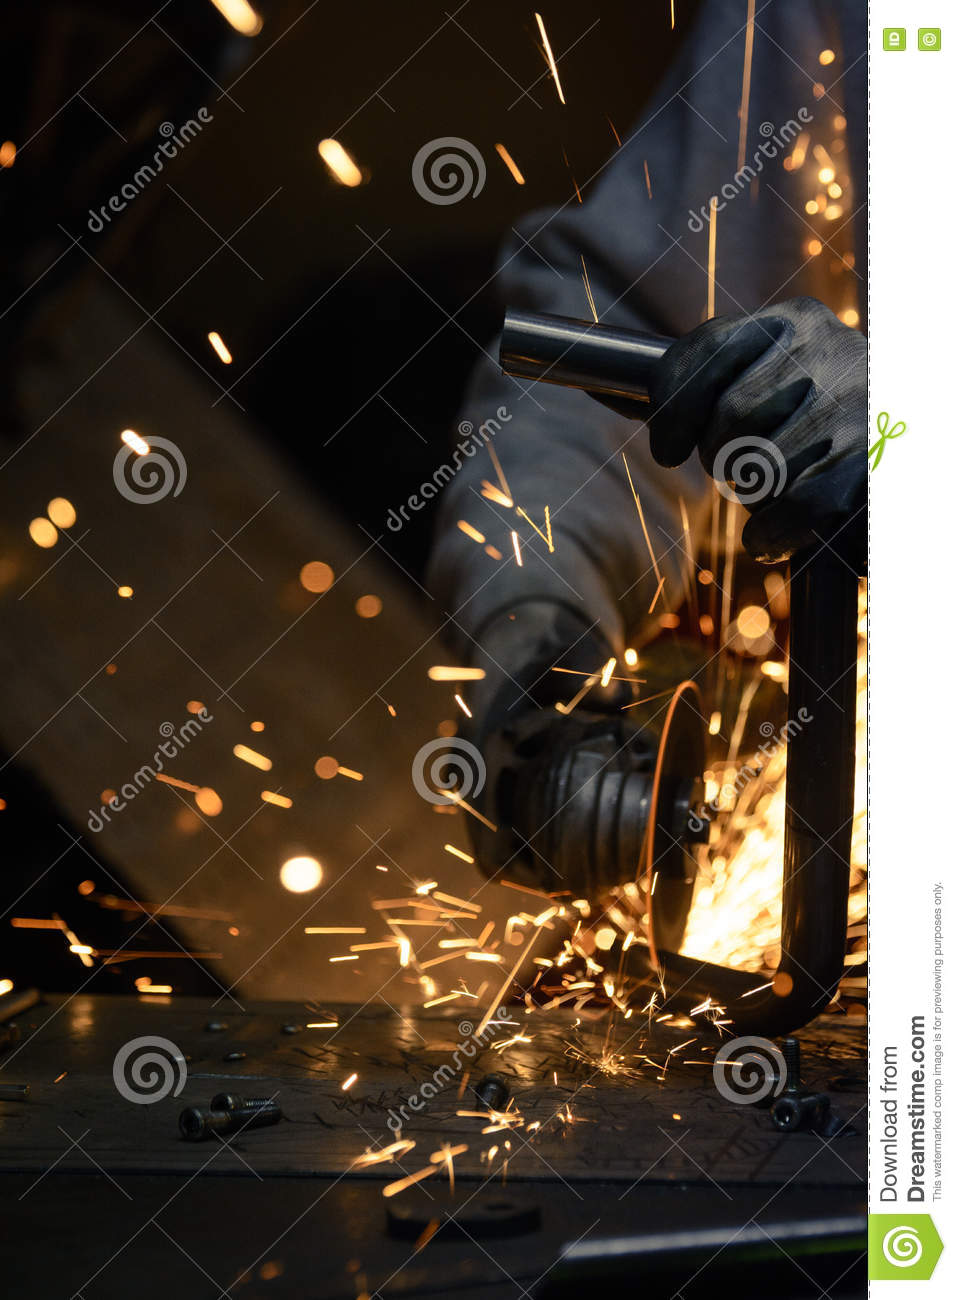 Worker cutting metal with grinder sparks flying while